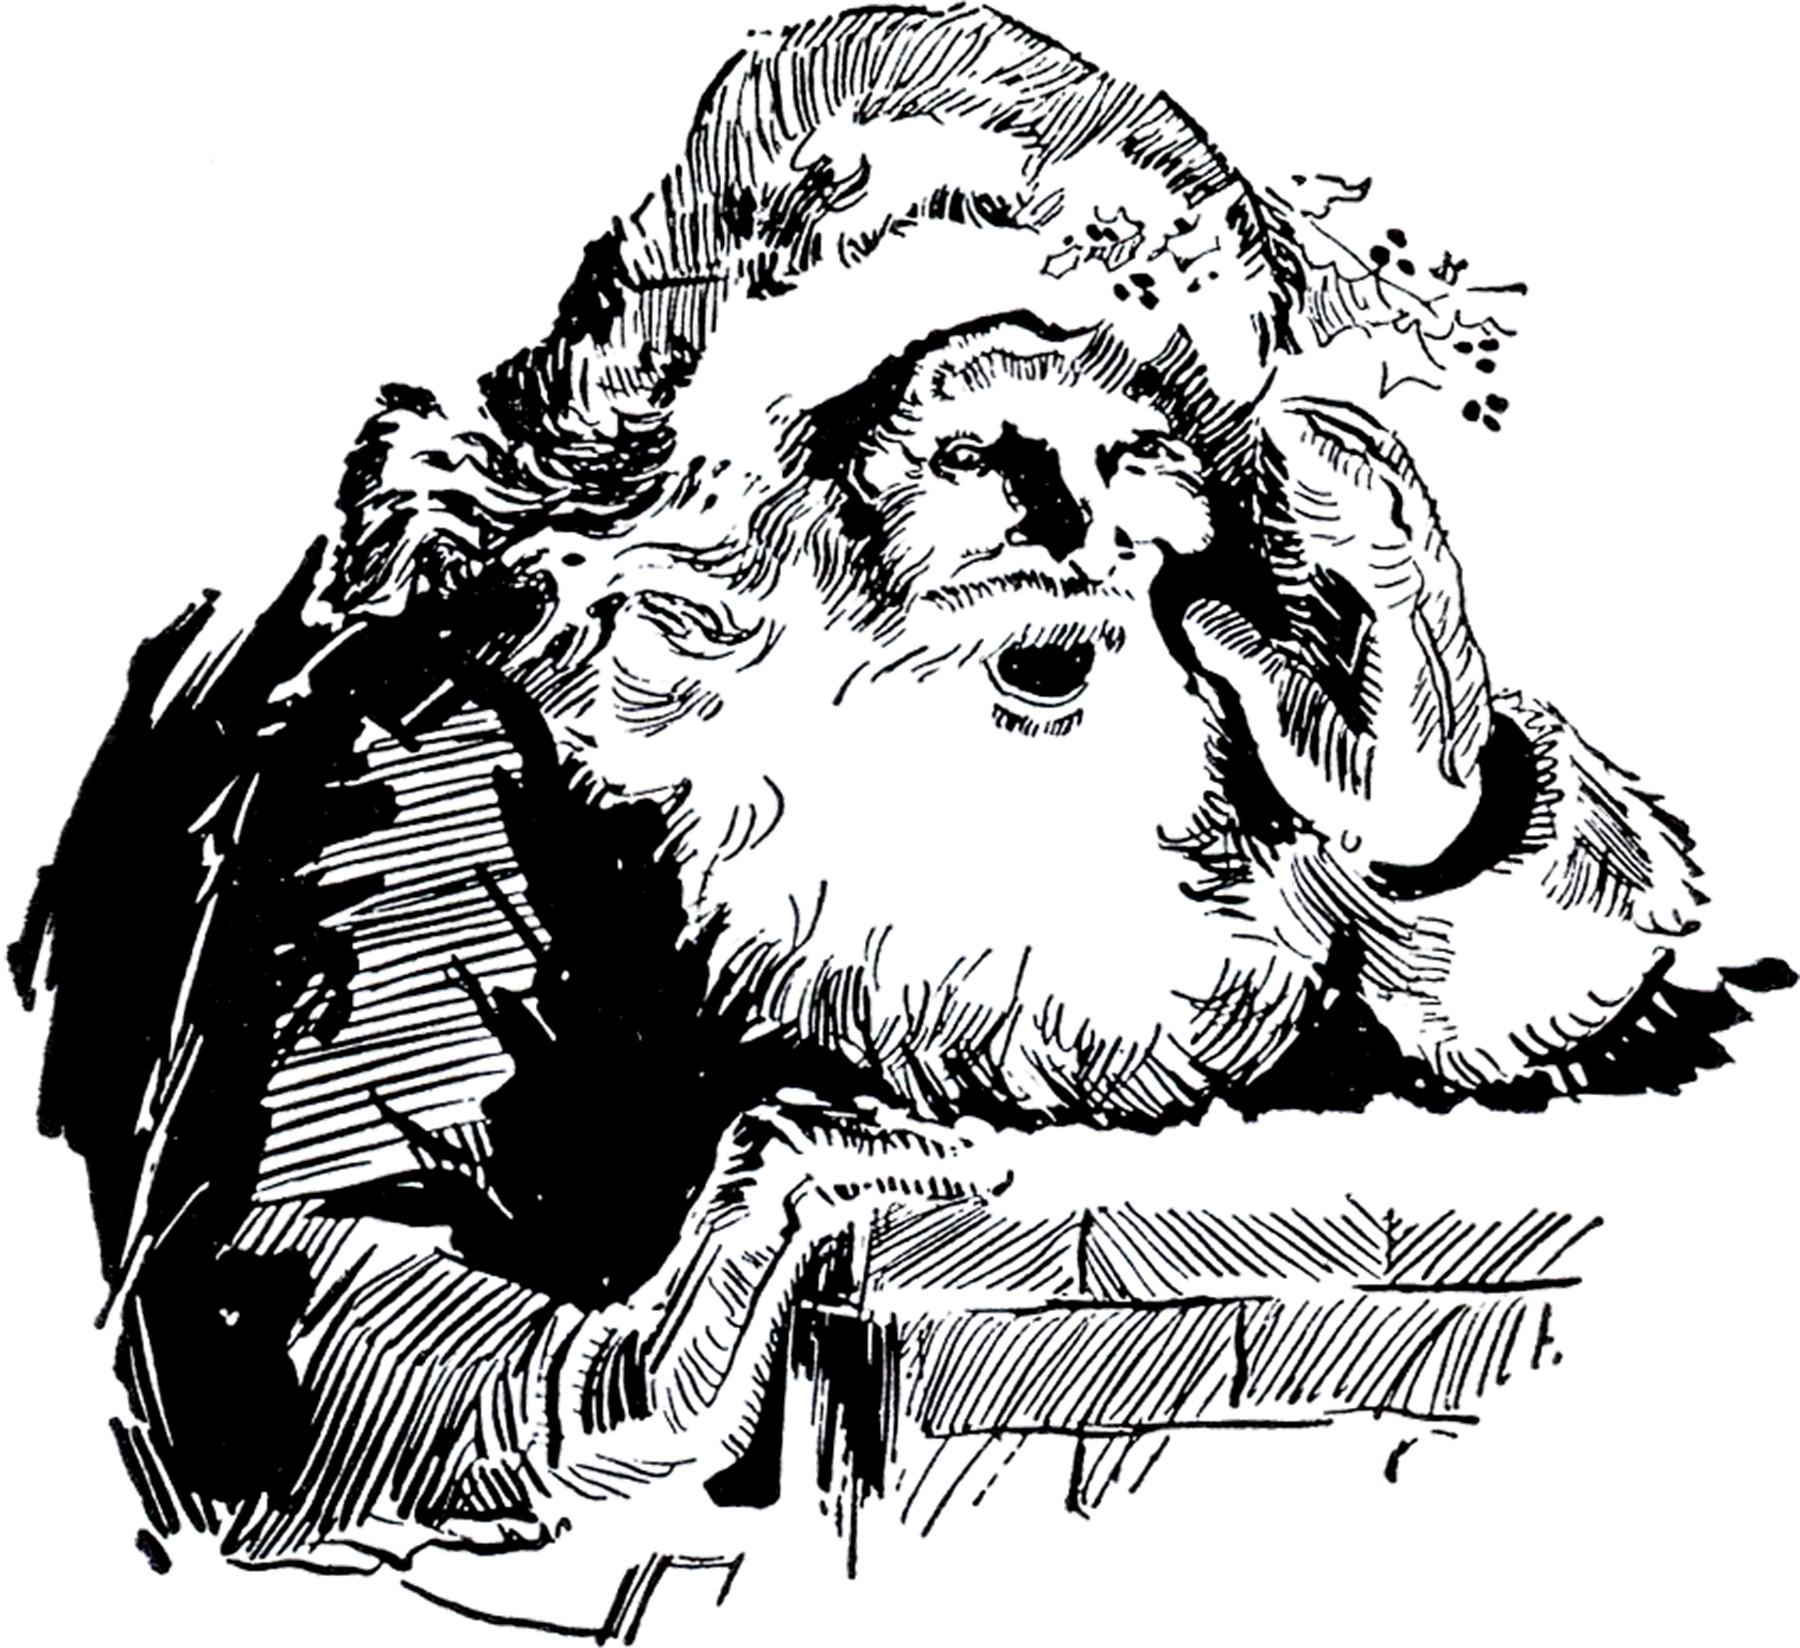 Santa with Chimney Image! - The Graphics Fairy